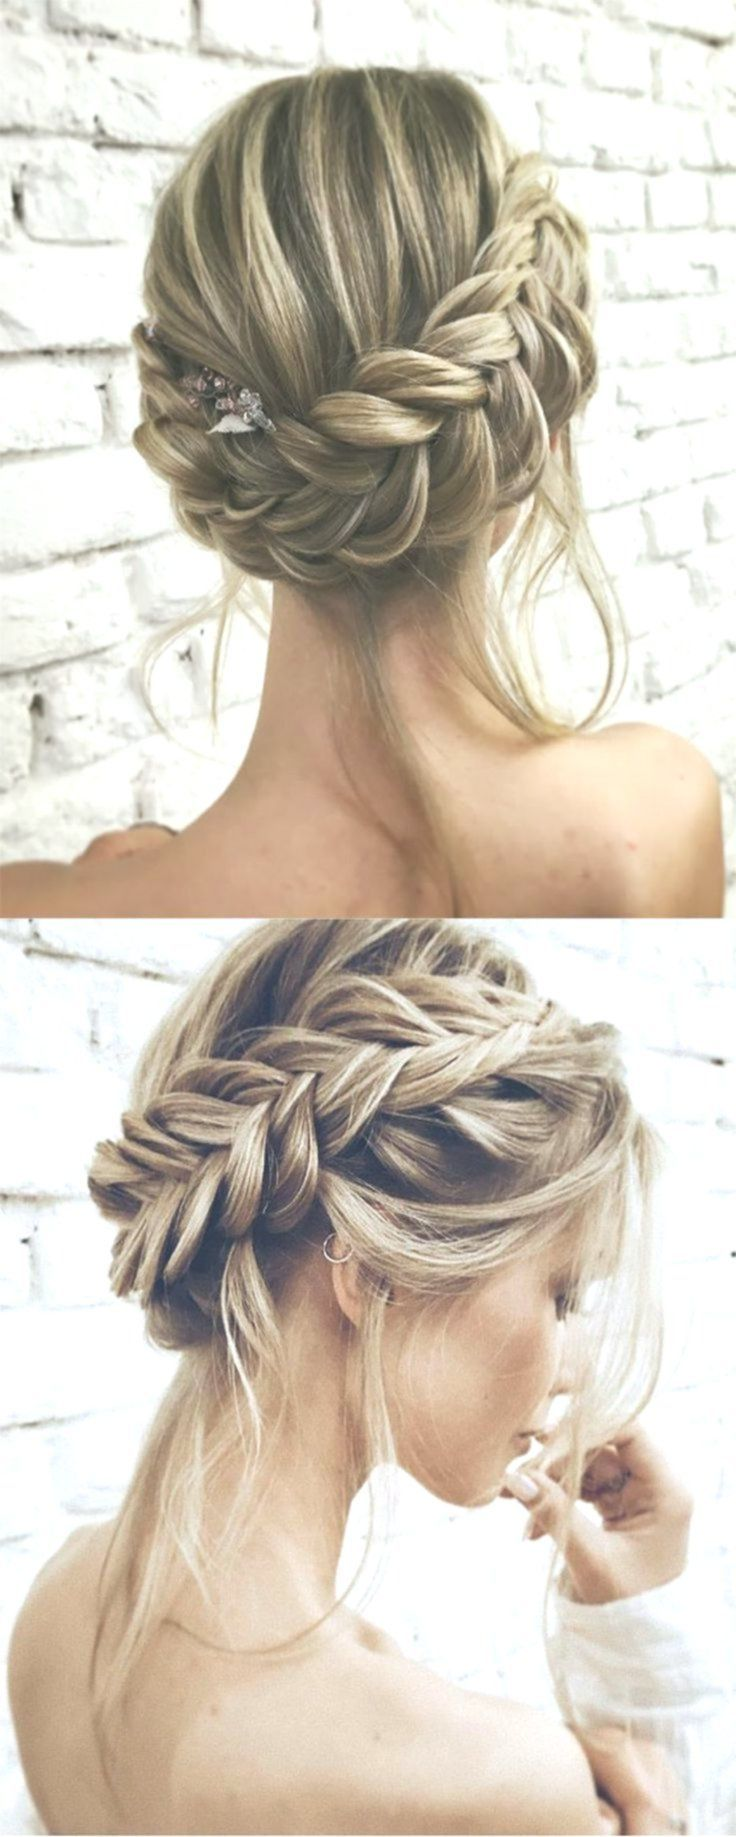 195 Greatest Formal Hairstyles For Shoulder Size Hair #formal #hairstyles #size #shoulder